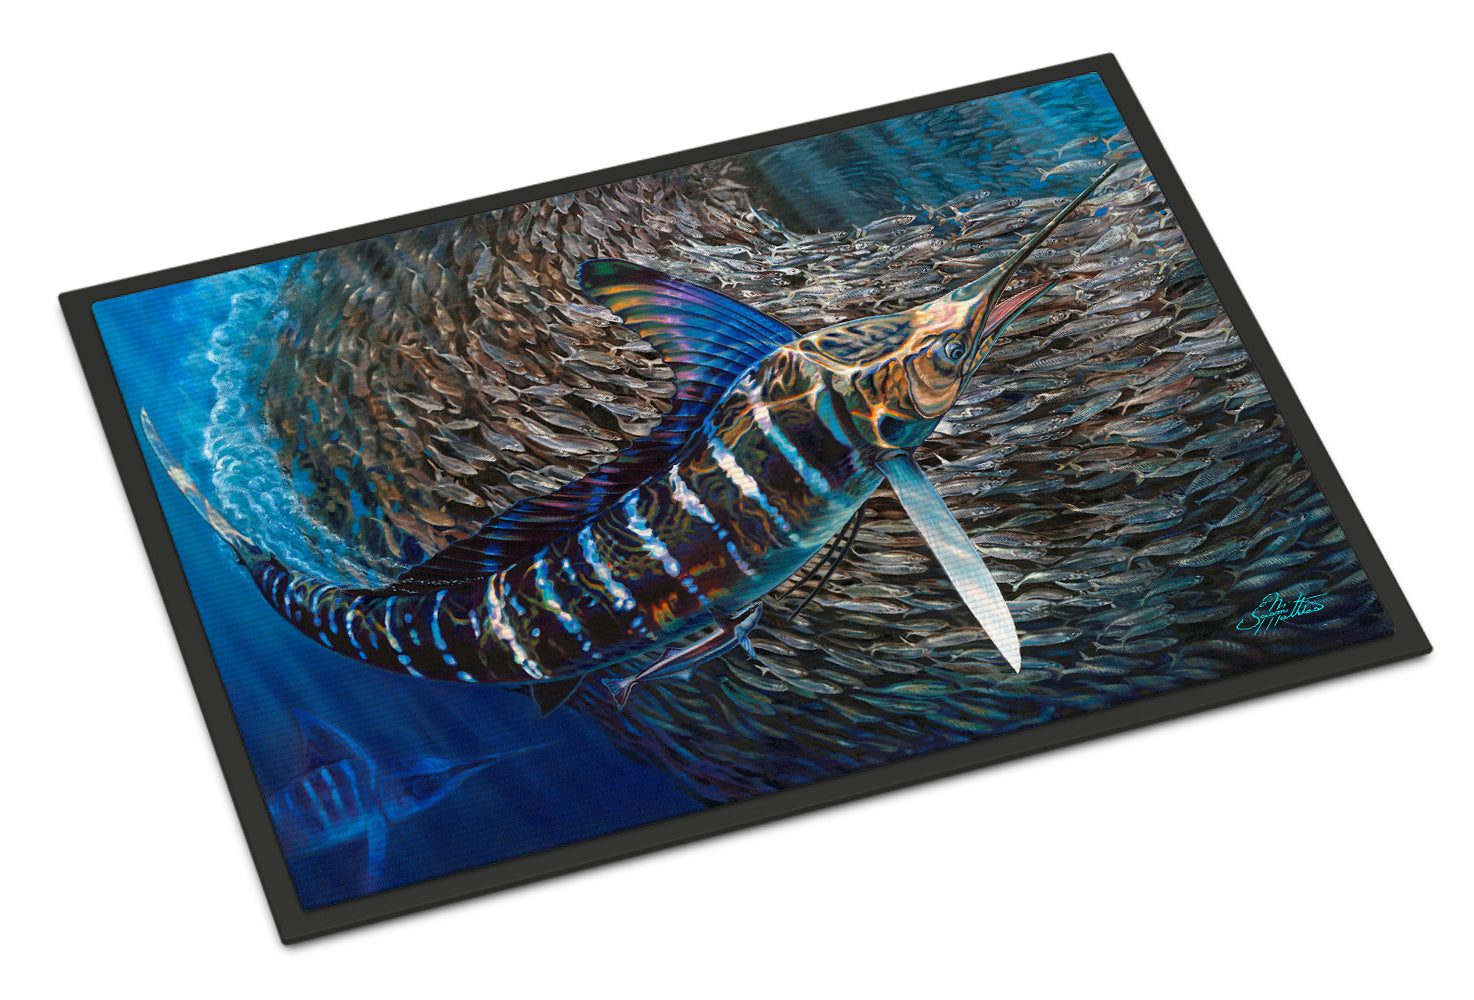 Striped Gem Striped Marlin Indoor or Outdoor Mat 18x27 JMA2014MAT by Caroline's Treasures